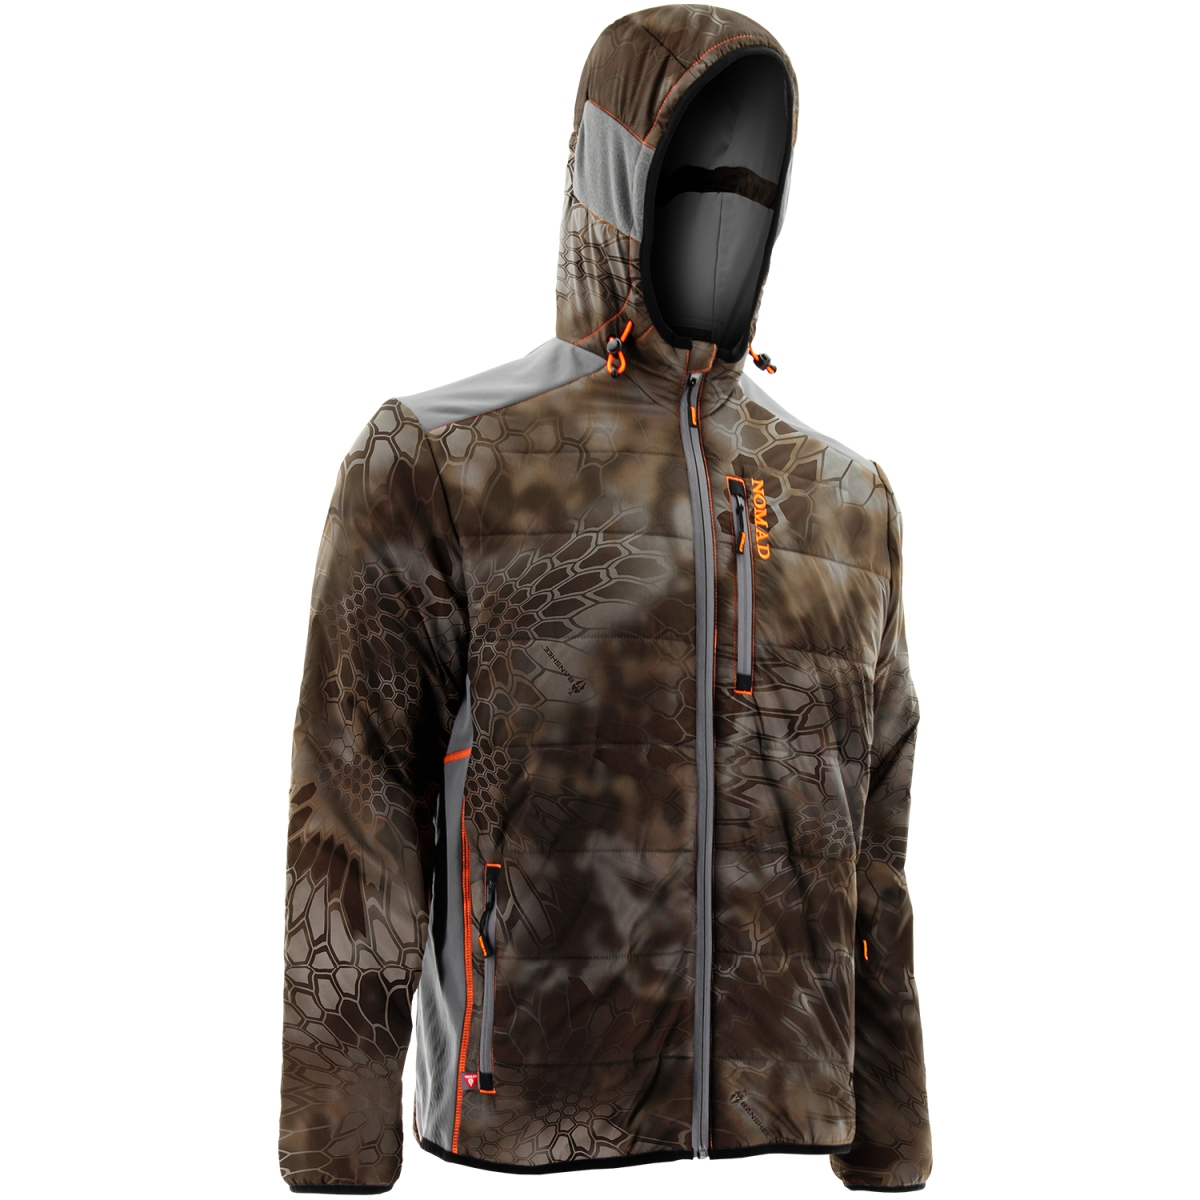 NOMAD Performance Hunting Apparel Announces New and Expanded Line - Now Available and Shipping